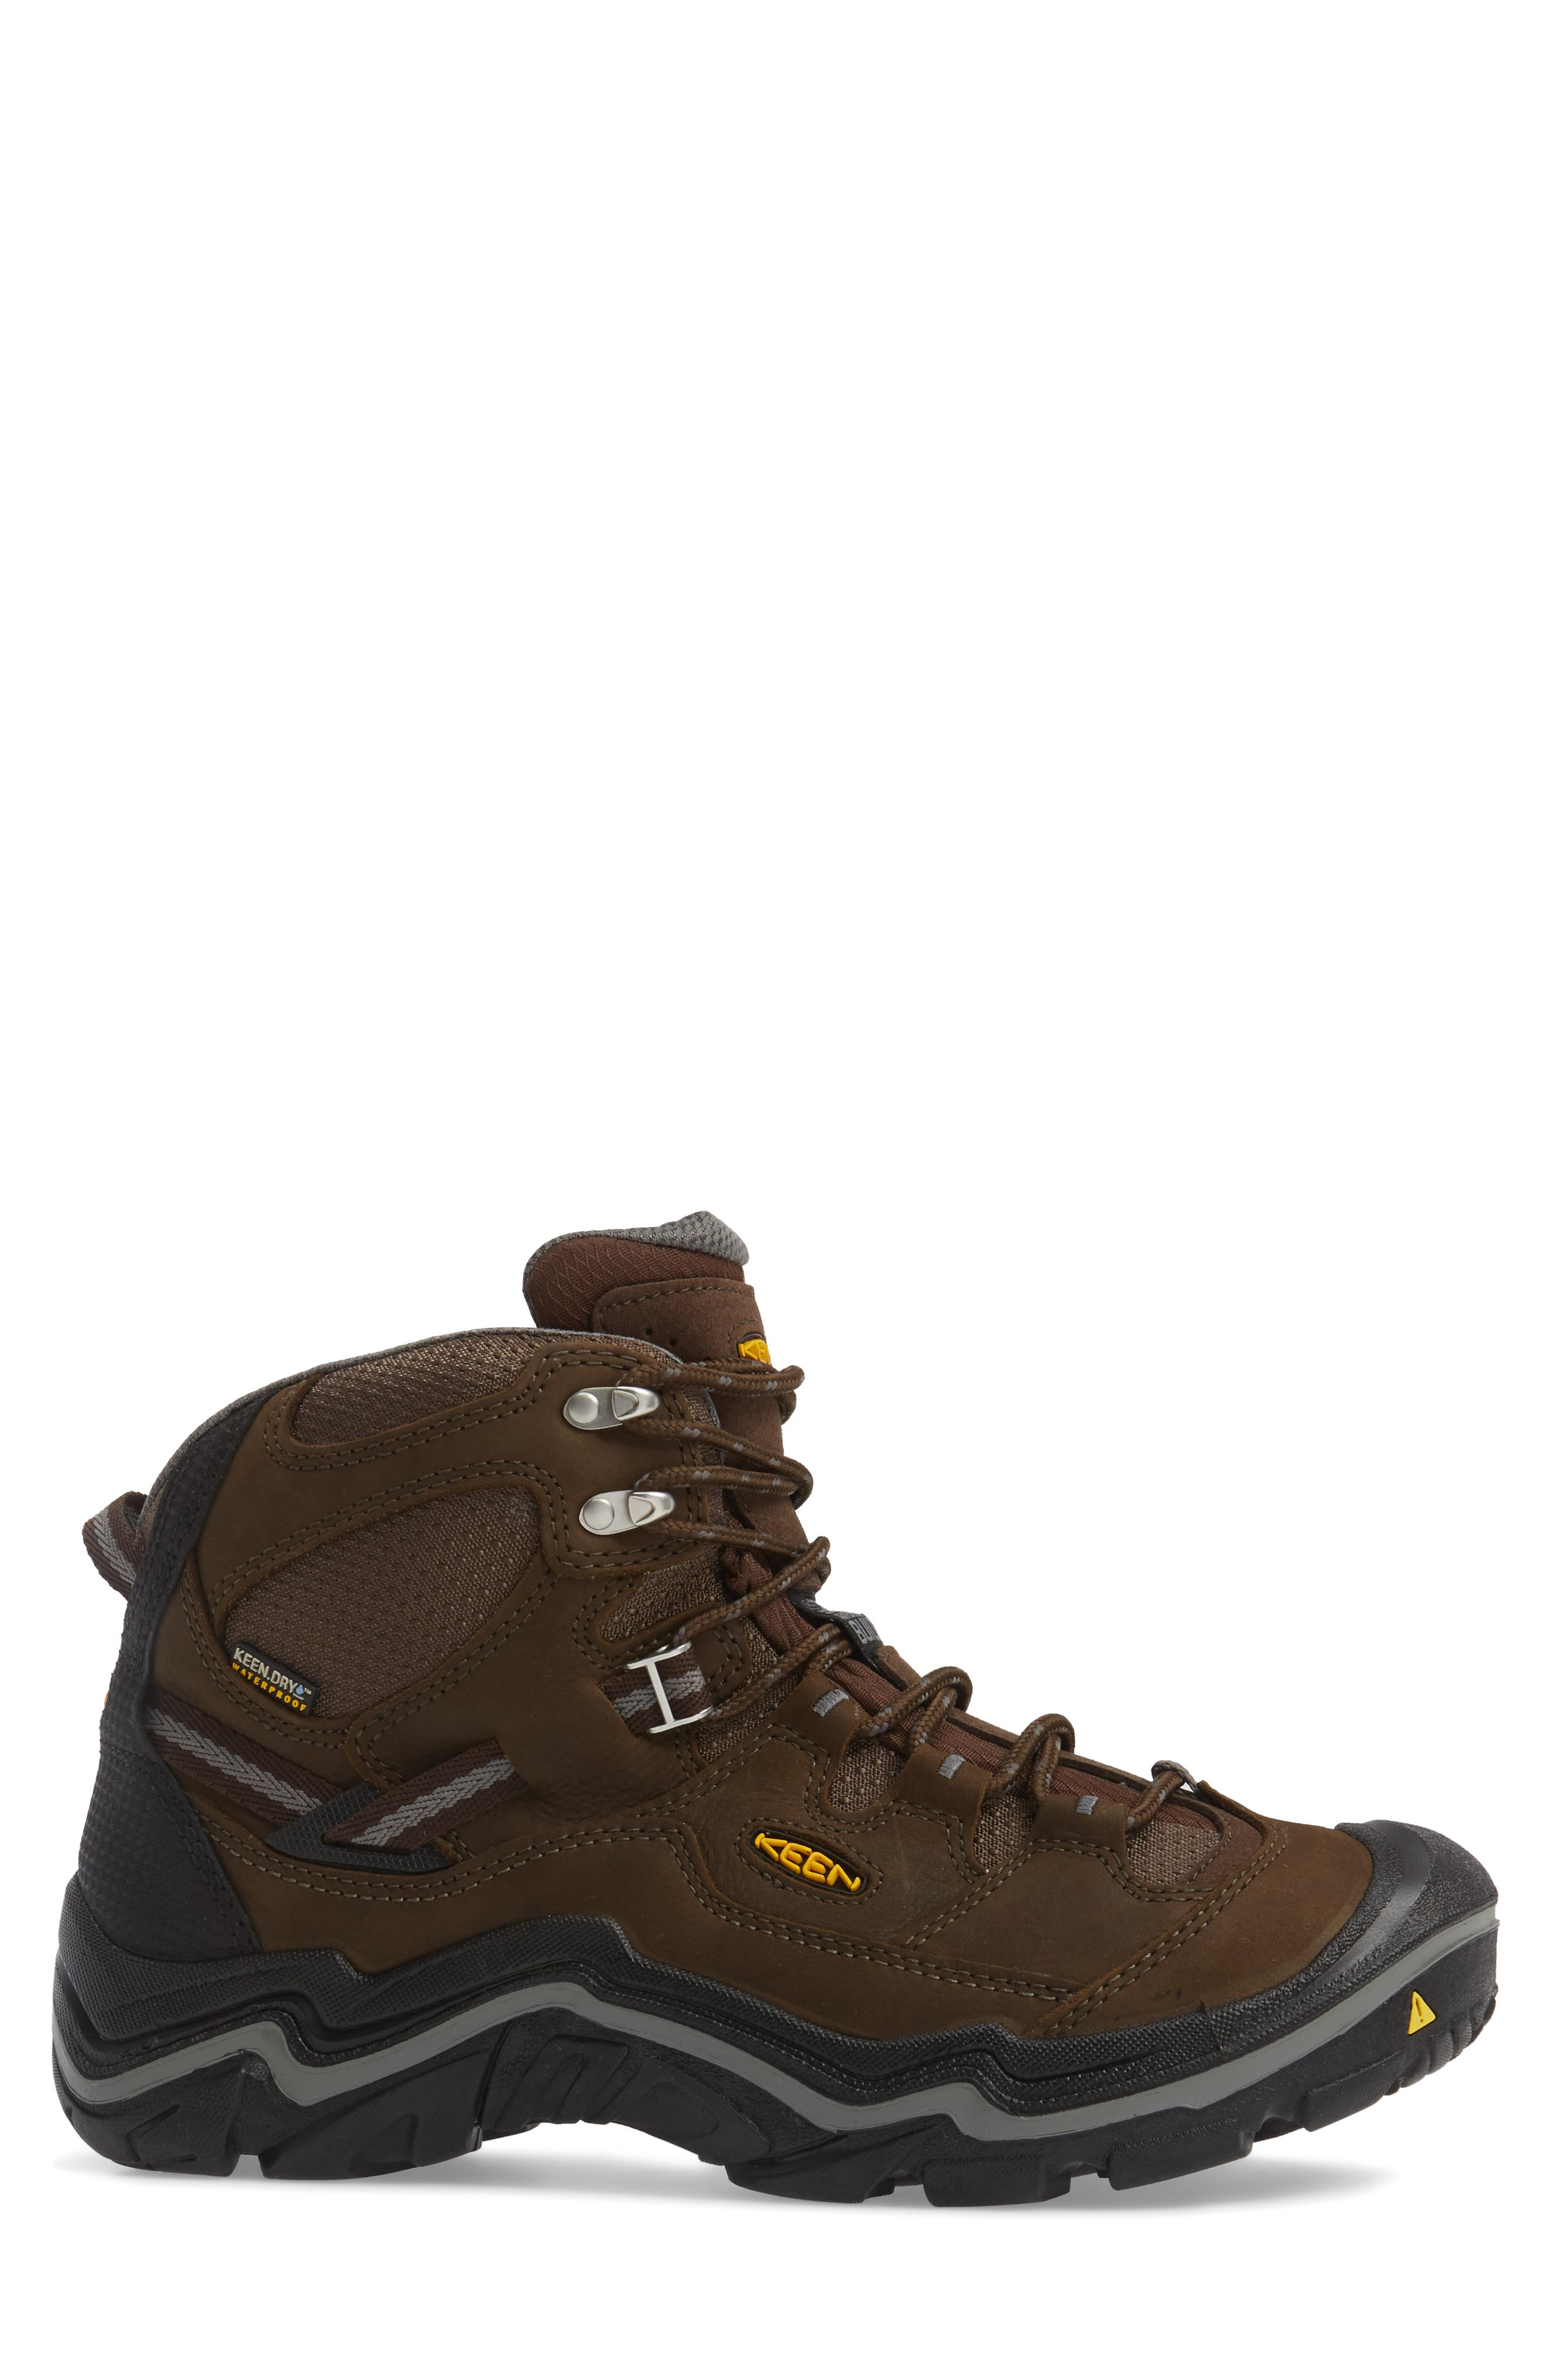 Durand Mid Waterproof Hiking Boot,                             Alternate thumbnail 3, color,                             BROWN LEATHER